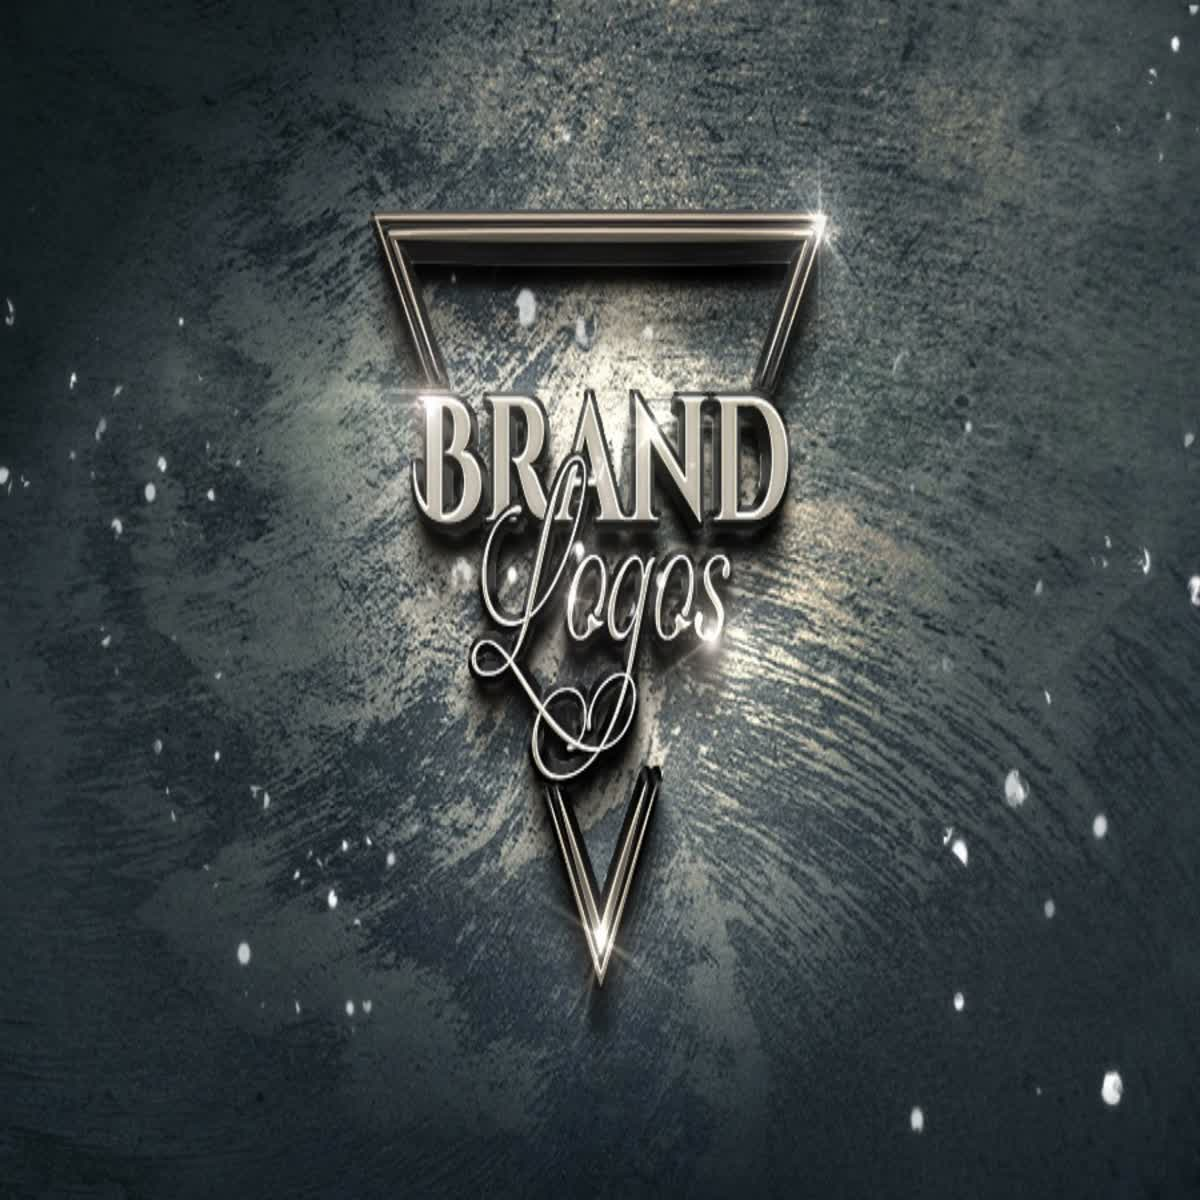 I will design a professional logo for your Business/Brand